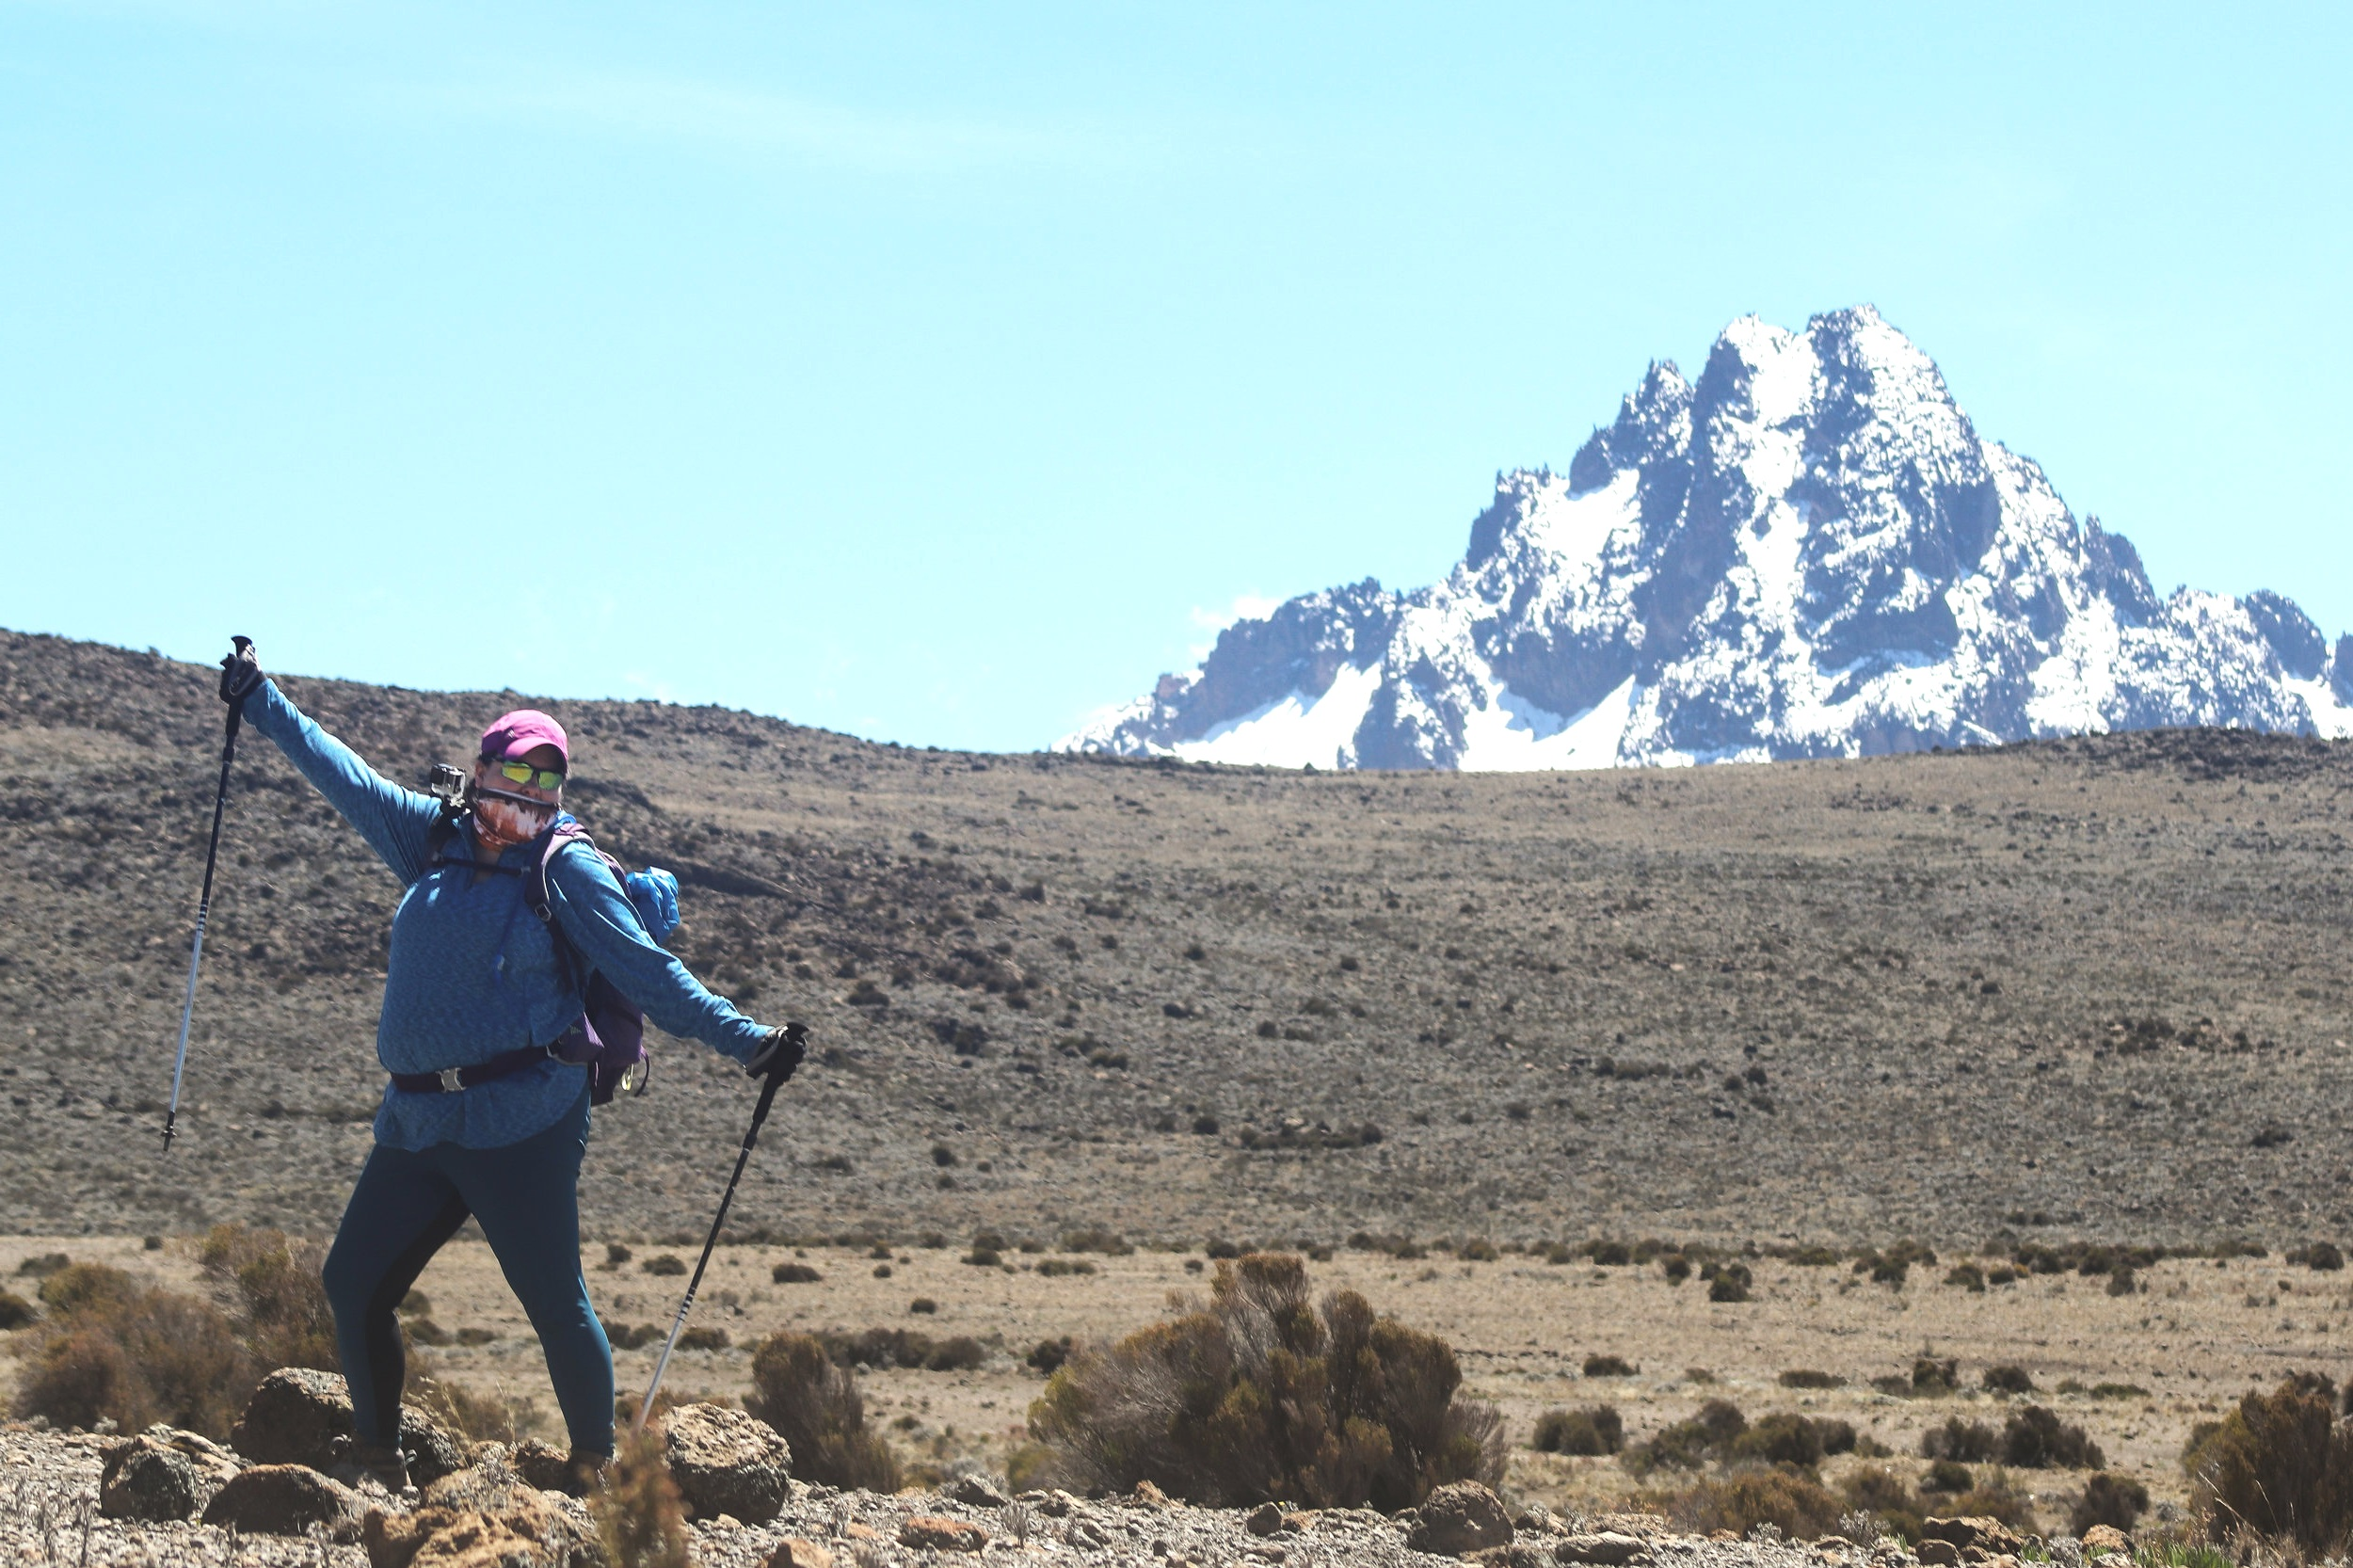 DAY 5:TAKE IT EASY - THIRD CAVE ACCLIMATIZATION DAYElevation: 3,800 - 4,330 - 3,800 mHiking Time: 4 - 5 hoursDistance: 6 km